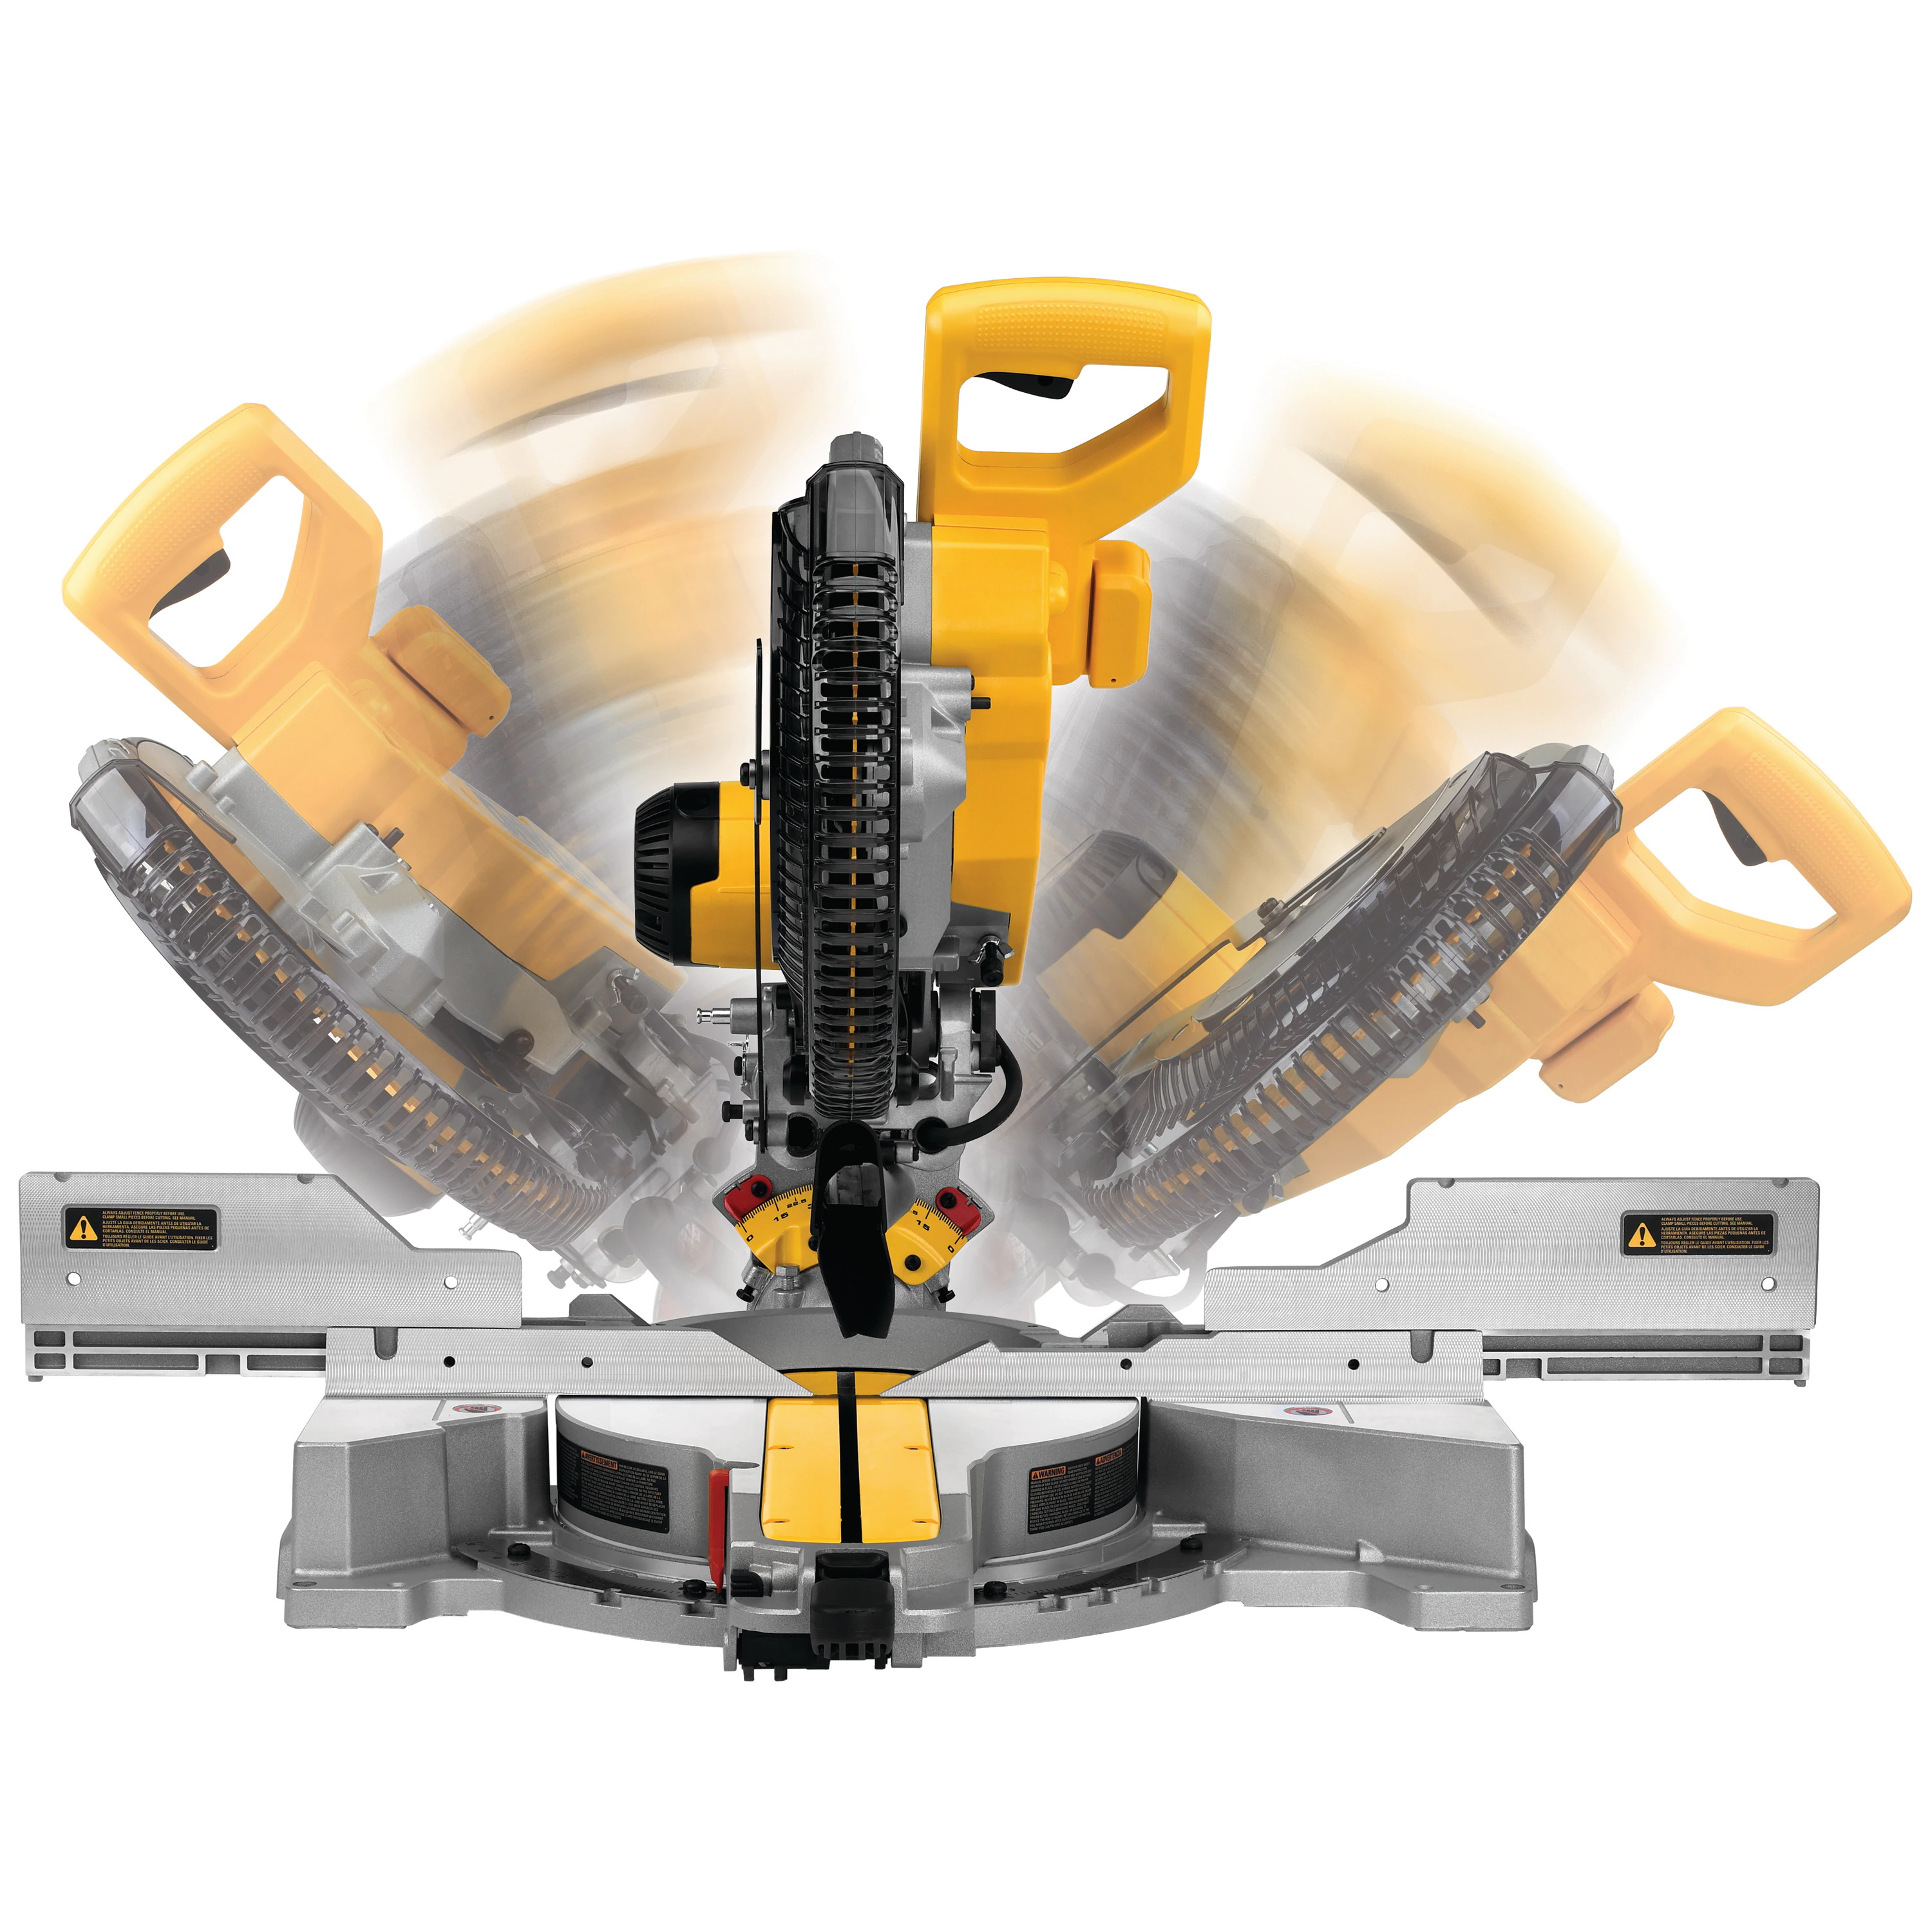 Picture of DeWALT DWS779 Sliding Miter Saw, Electric, 12 in Dia Blade, 6-3/4 in Cutting Capacity, 3800 rpm Speed